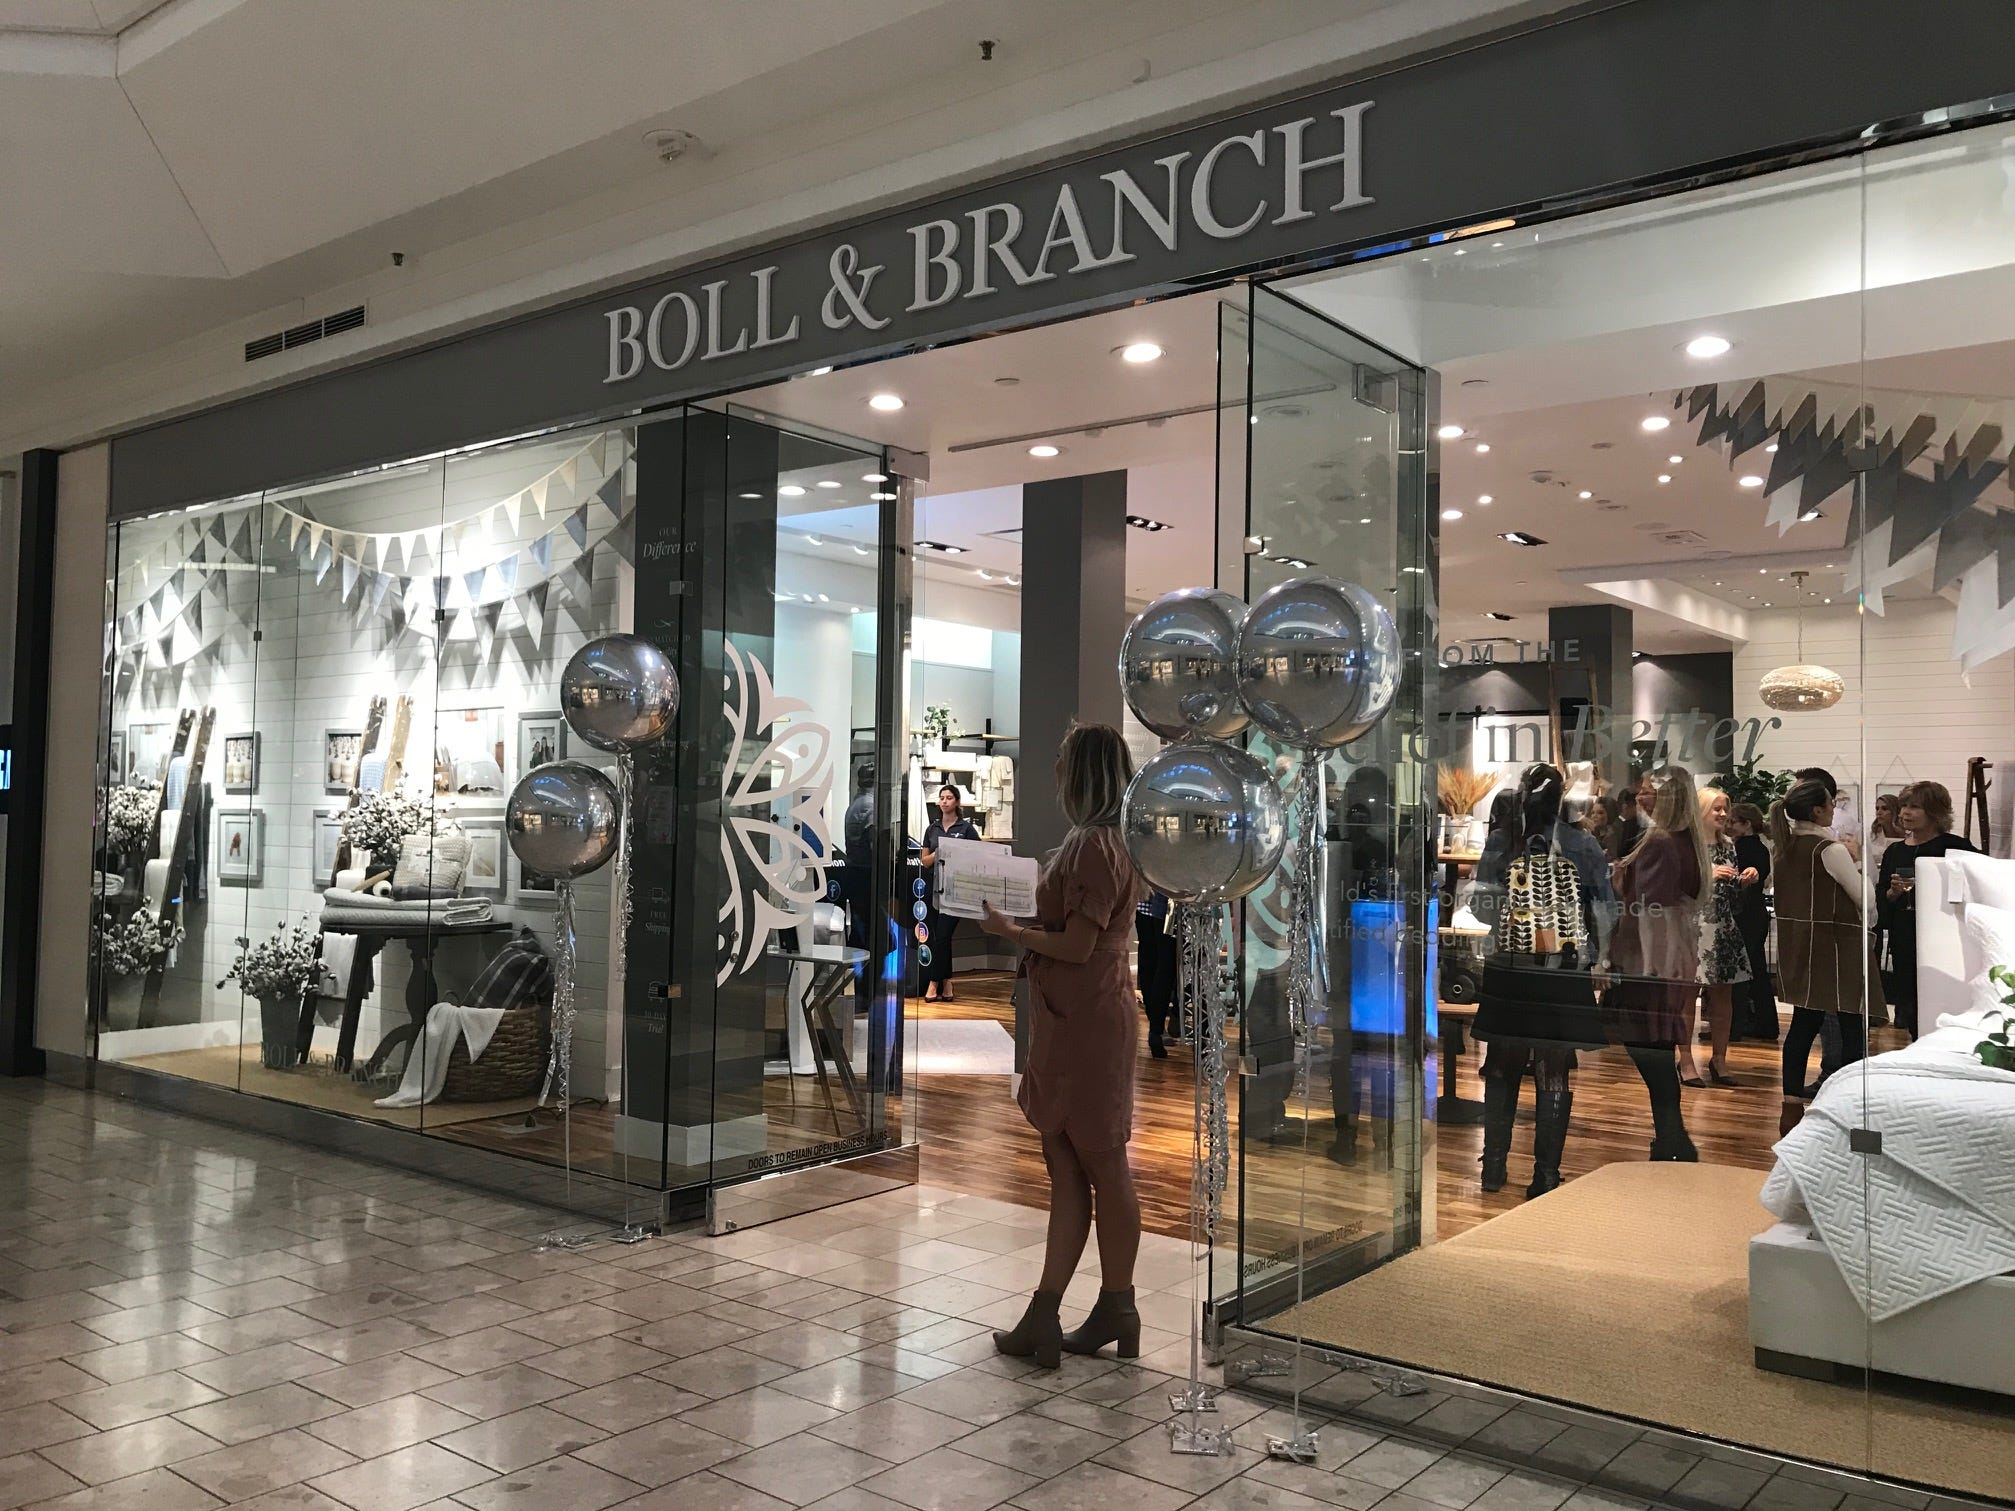 Summit-based Boll & Branch, the world's first organic, Fair Trade-certified bedding retailer, opened its new flagship store at The Mall at Short Hills in September. The brick-and-mortar location features the brand's full collection of ethically made and sustainably sourced items.